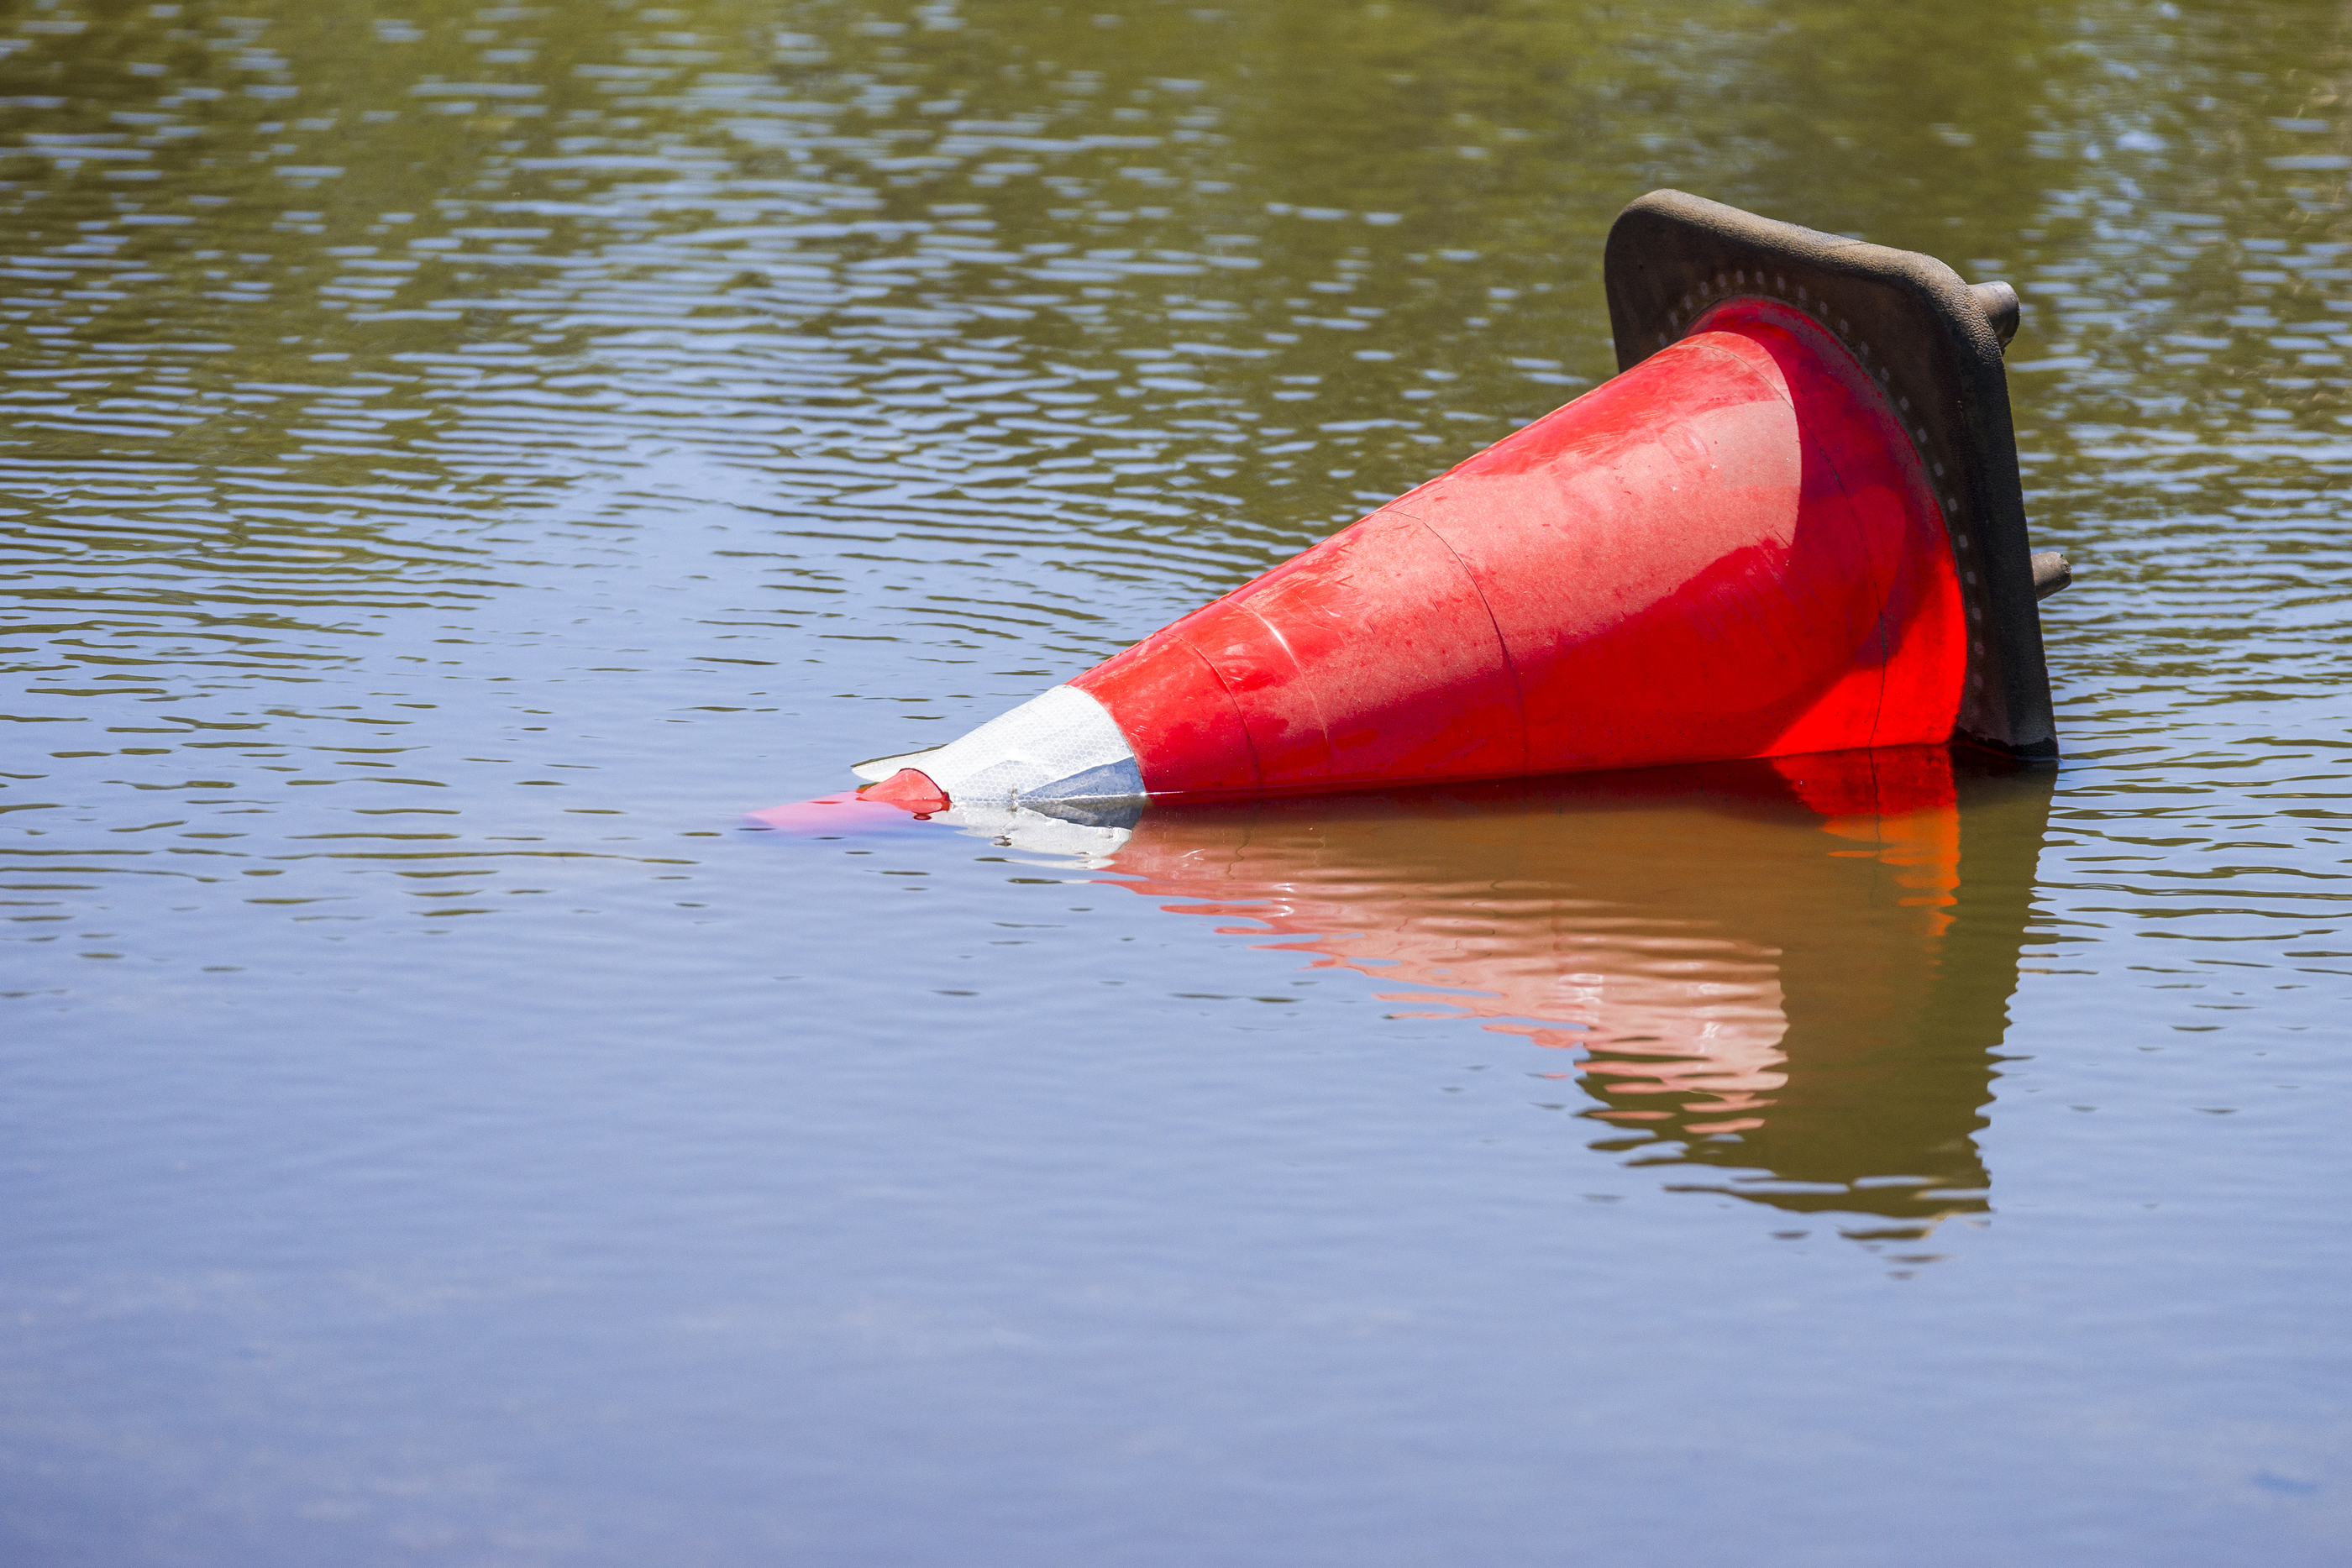 Roadside cone laying in water